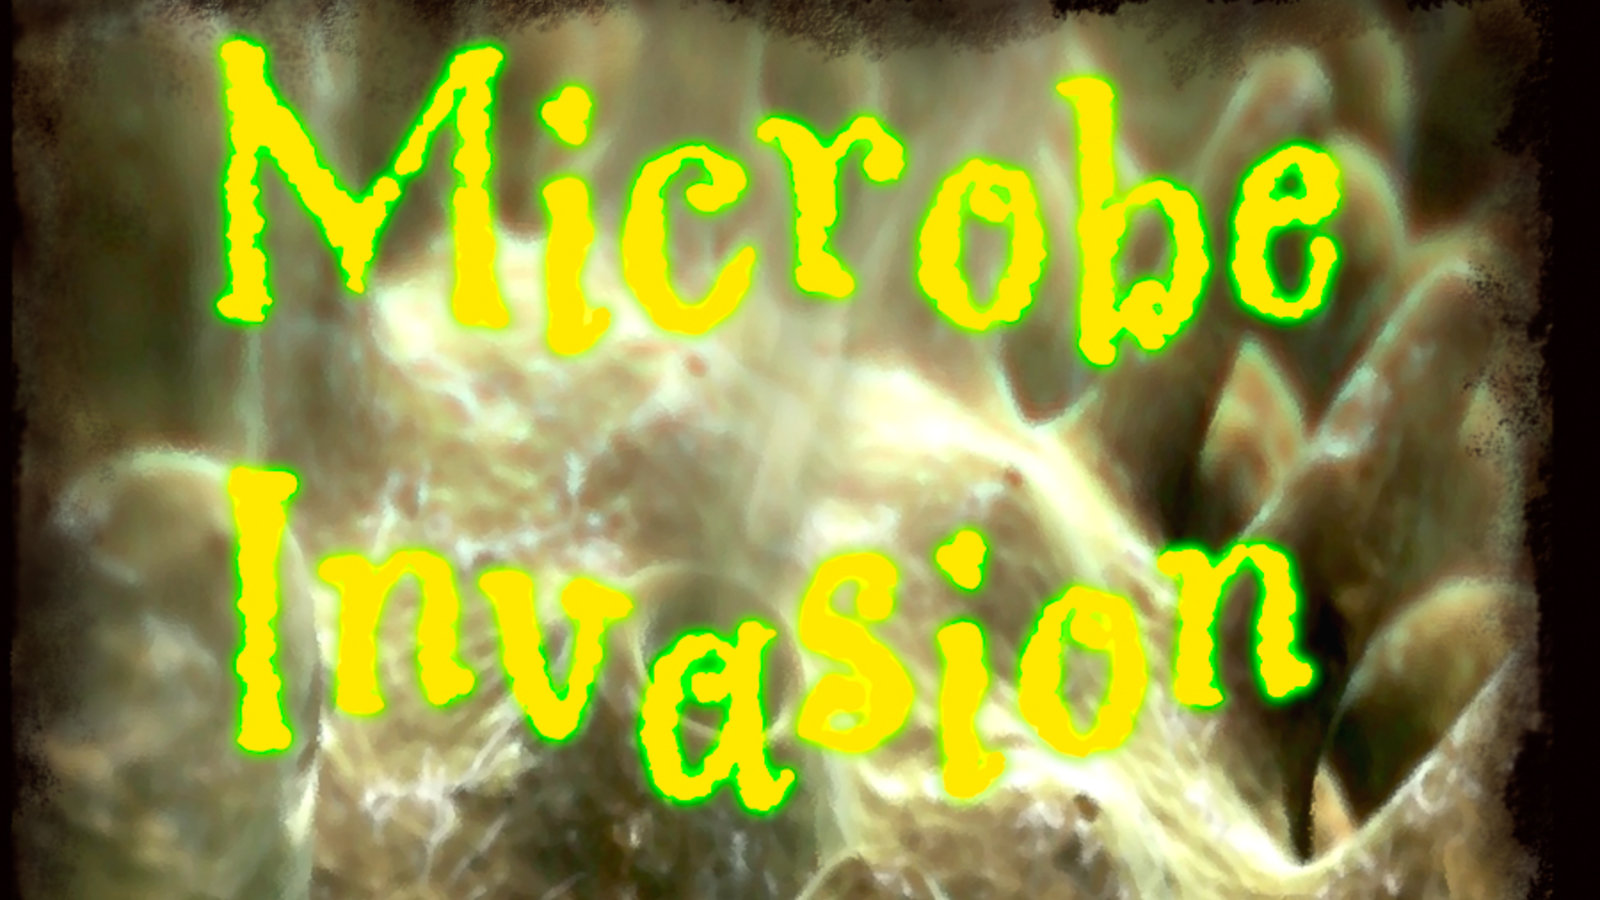 Microbe Invasion - The Role Bacteria Plays in Our Daily Lives